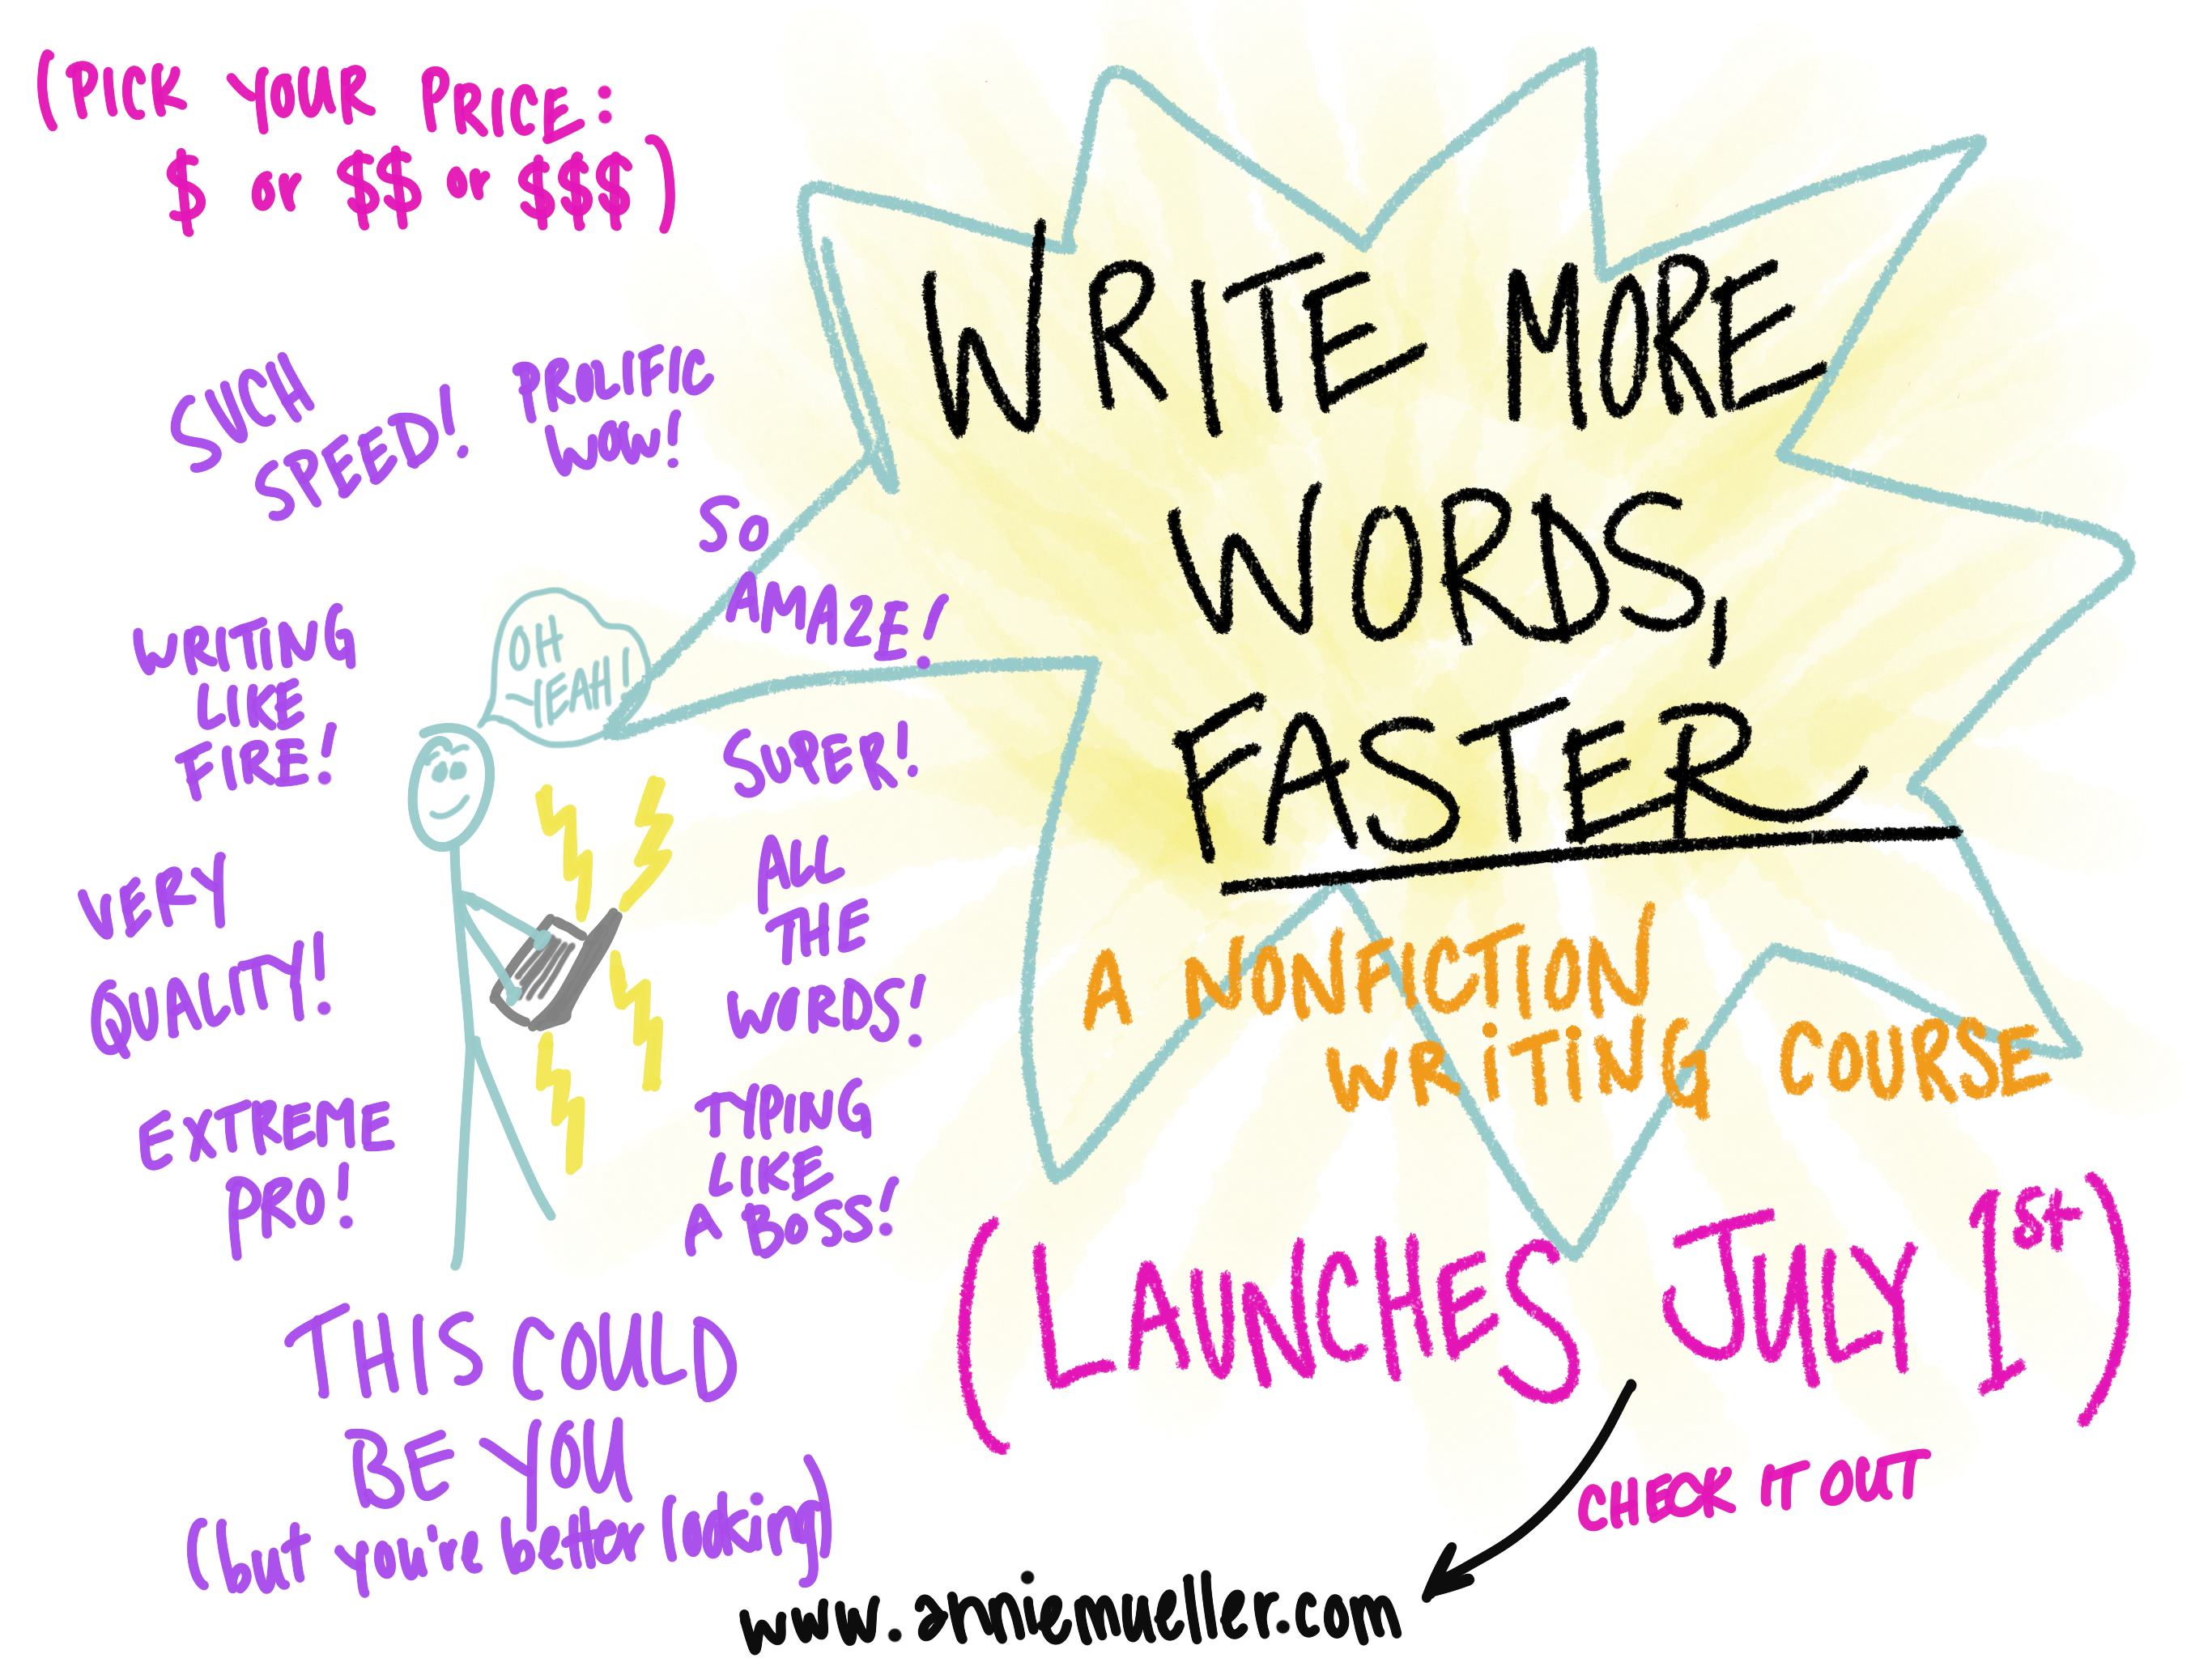 WRITE MORE WORDS FASTER YEAH